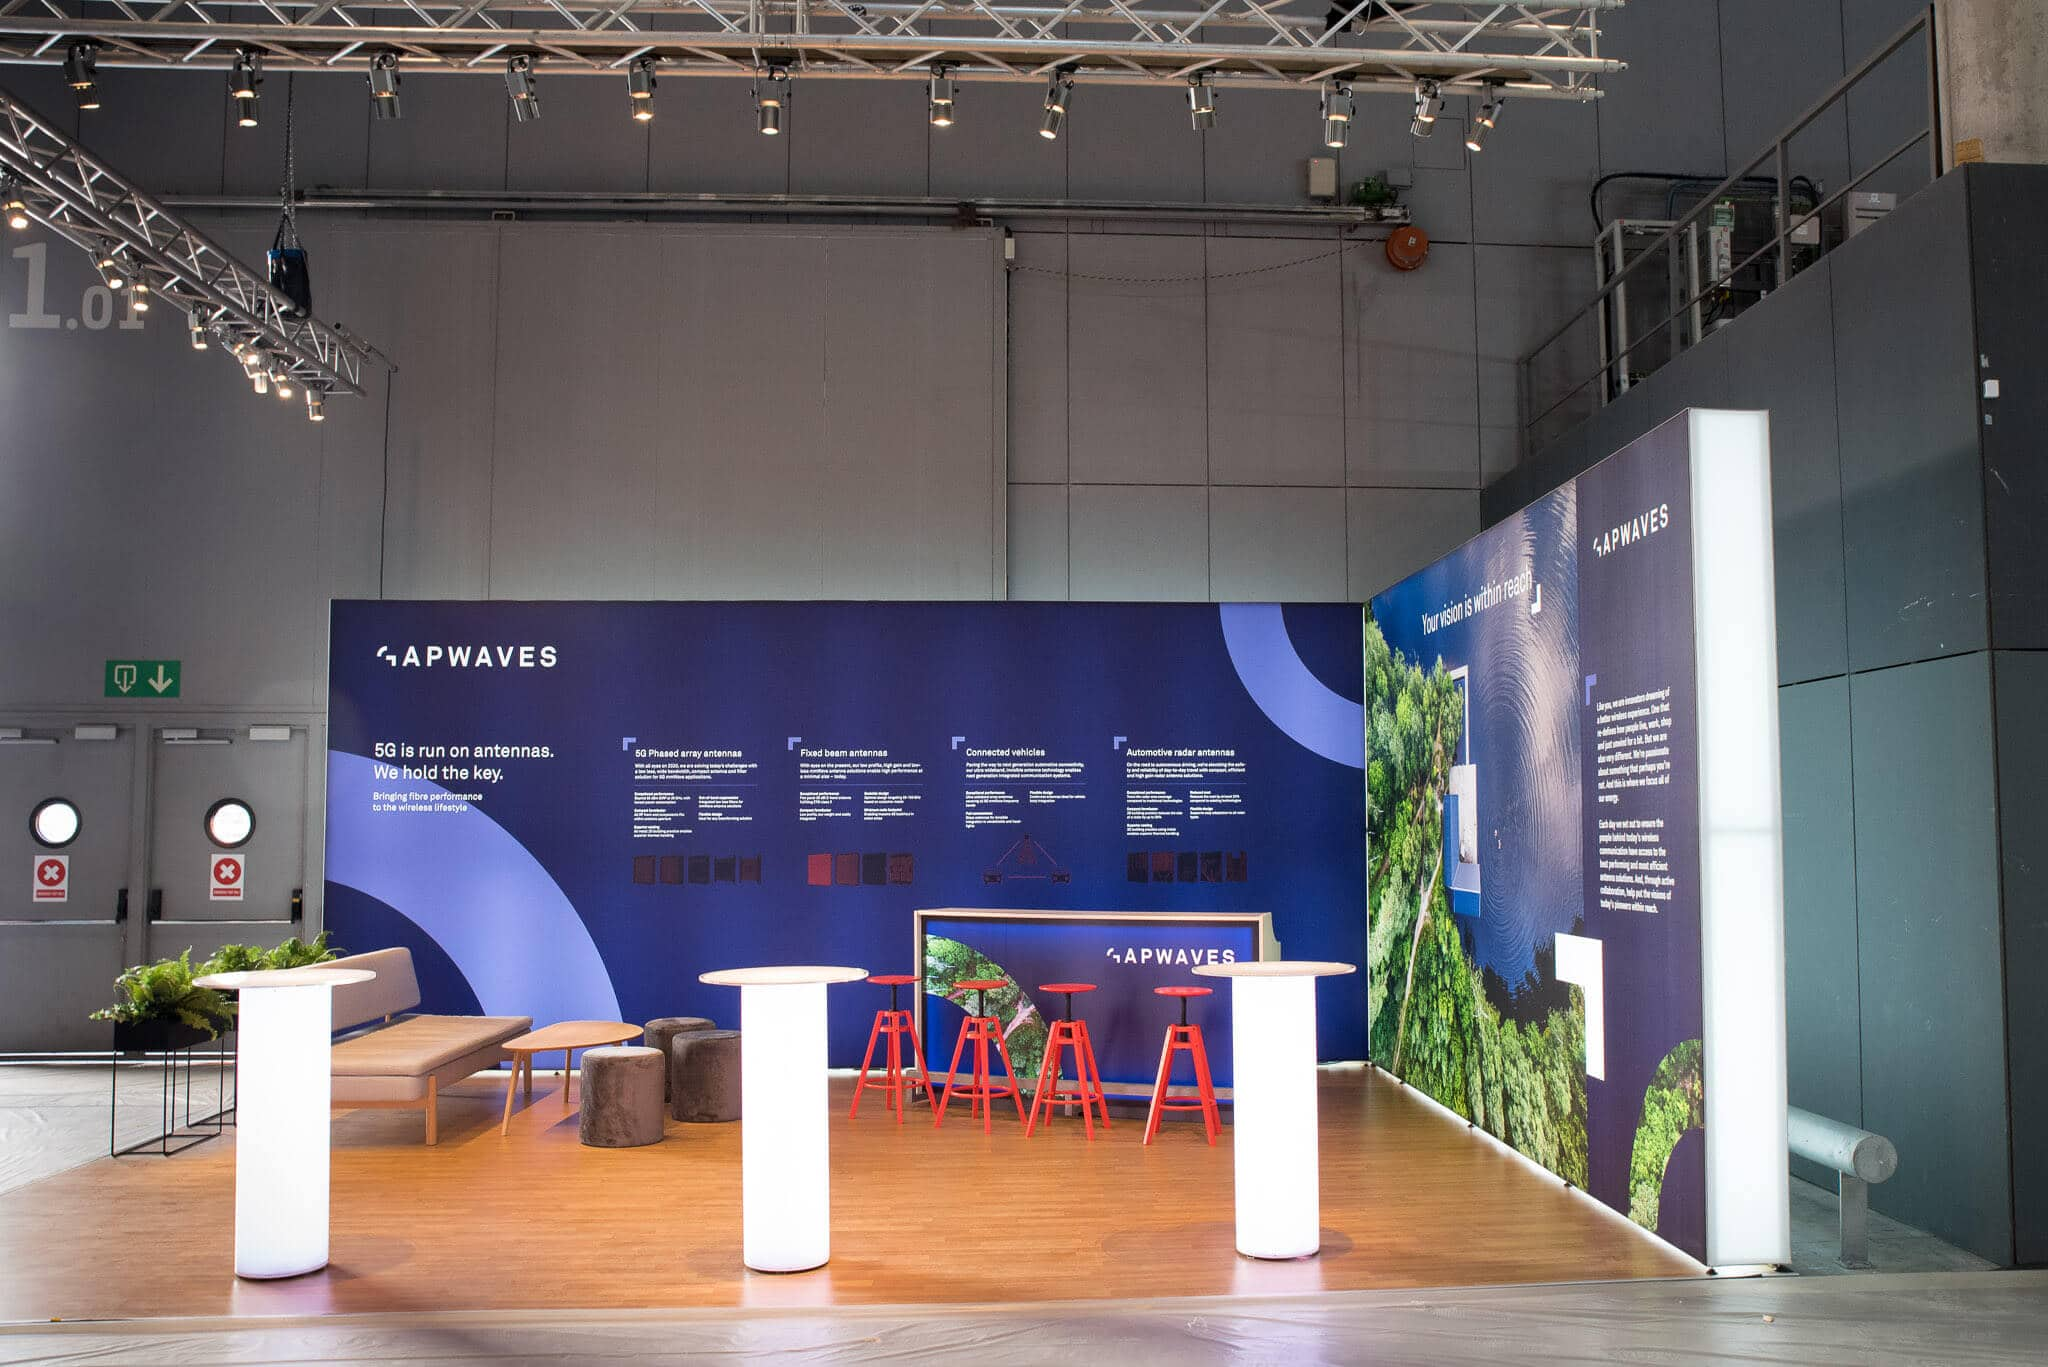 Gapwaves Mobile World Congress 2019 Monter Front Row Exhibitions